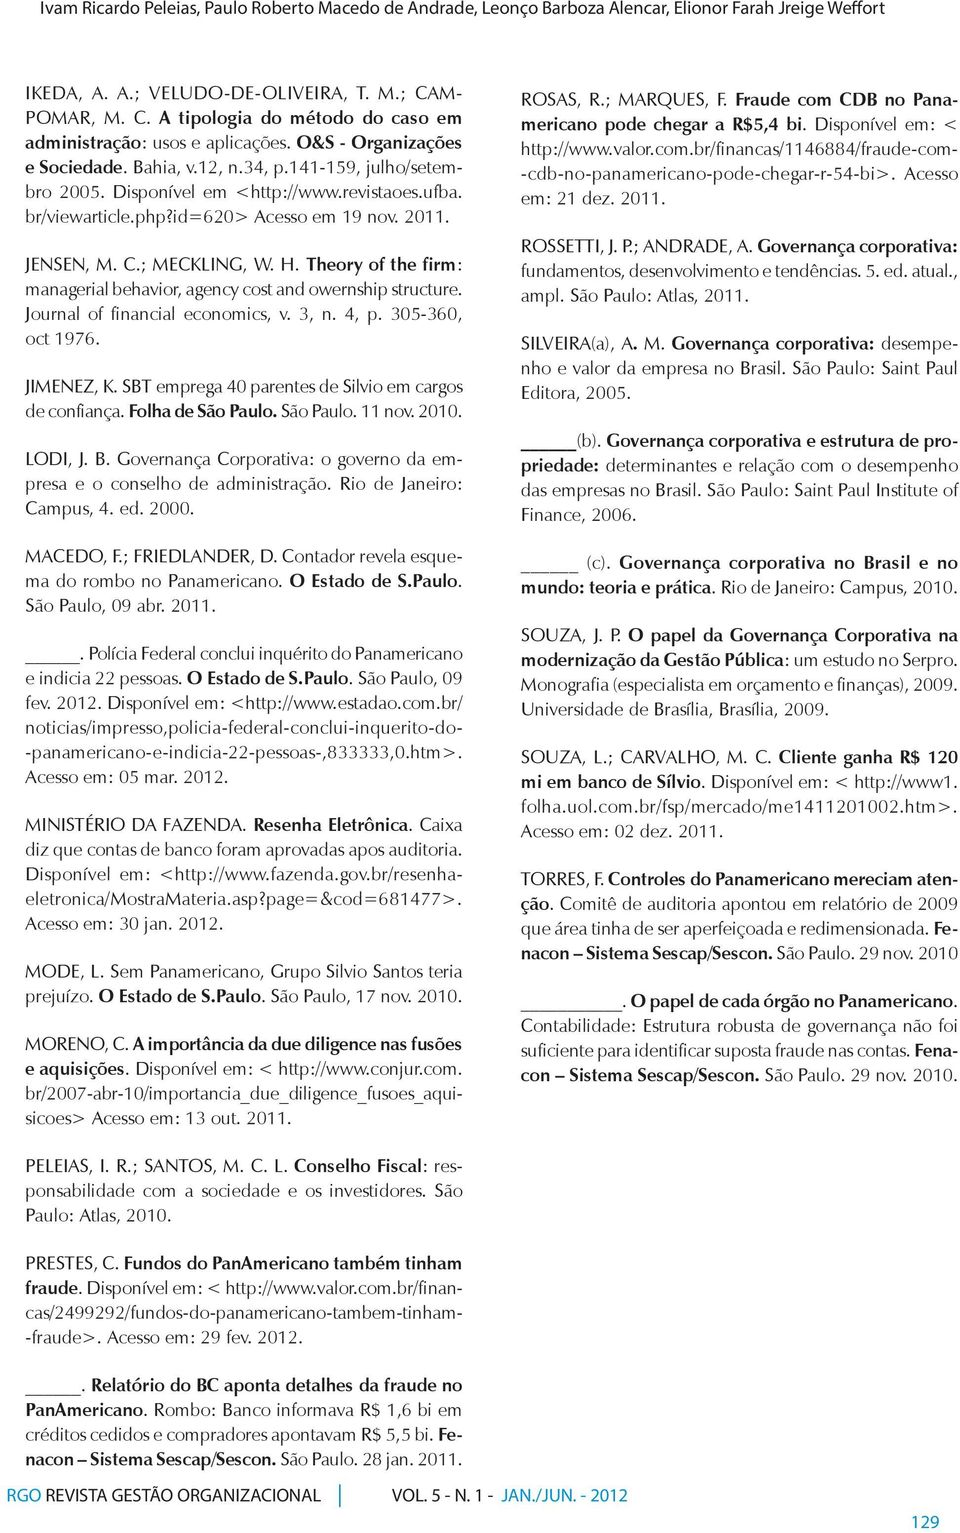 revistaoes.ufba. br/viewarticle.php?id=620> Acesso em 19 nov. 2011. JENSEN, M. C.; MECKLING, W. H. Theory of the firm: managerial behavior, agency cost and owernship structure.